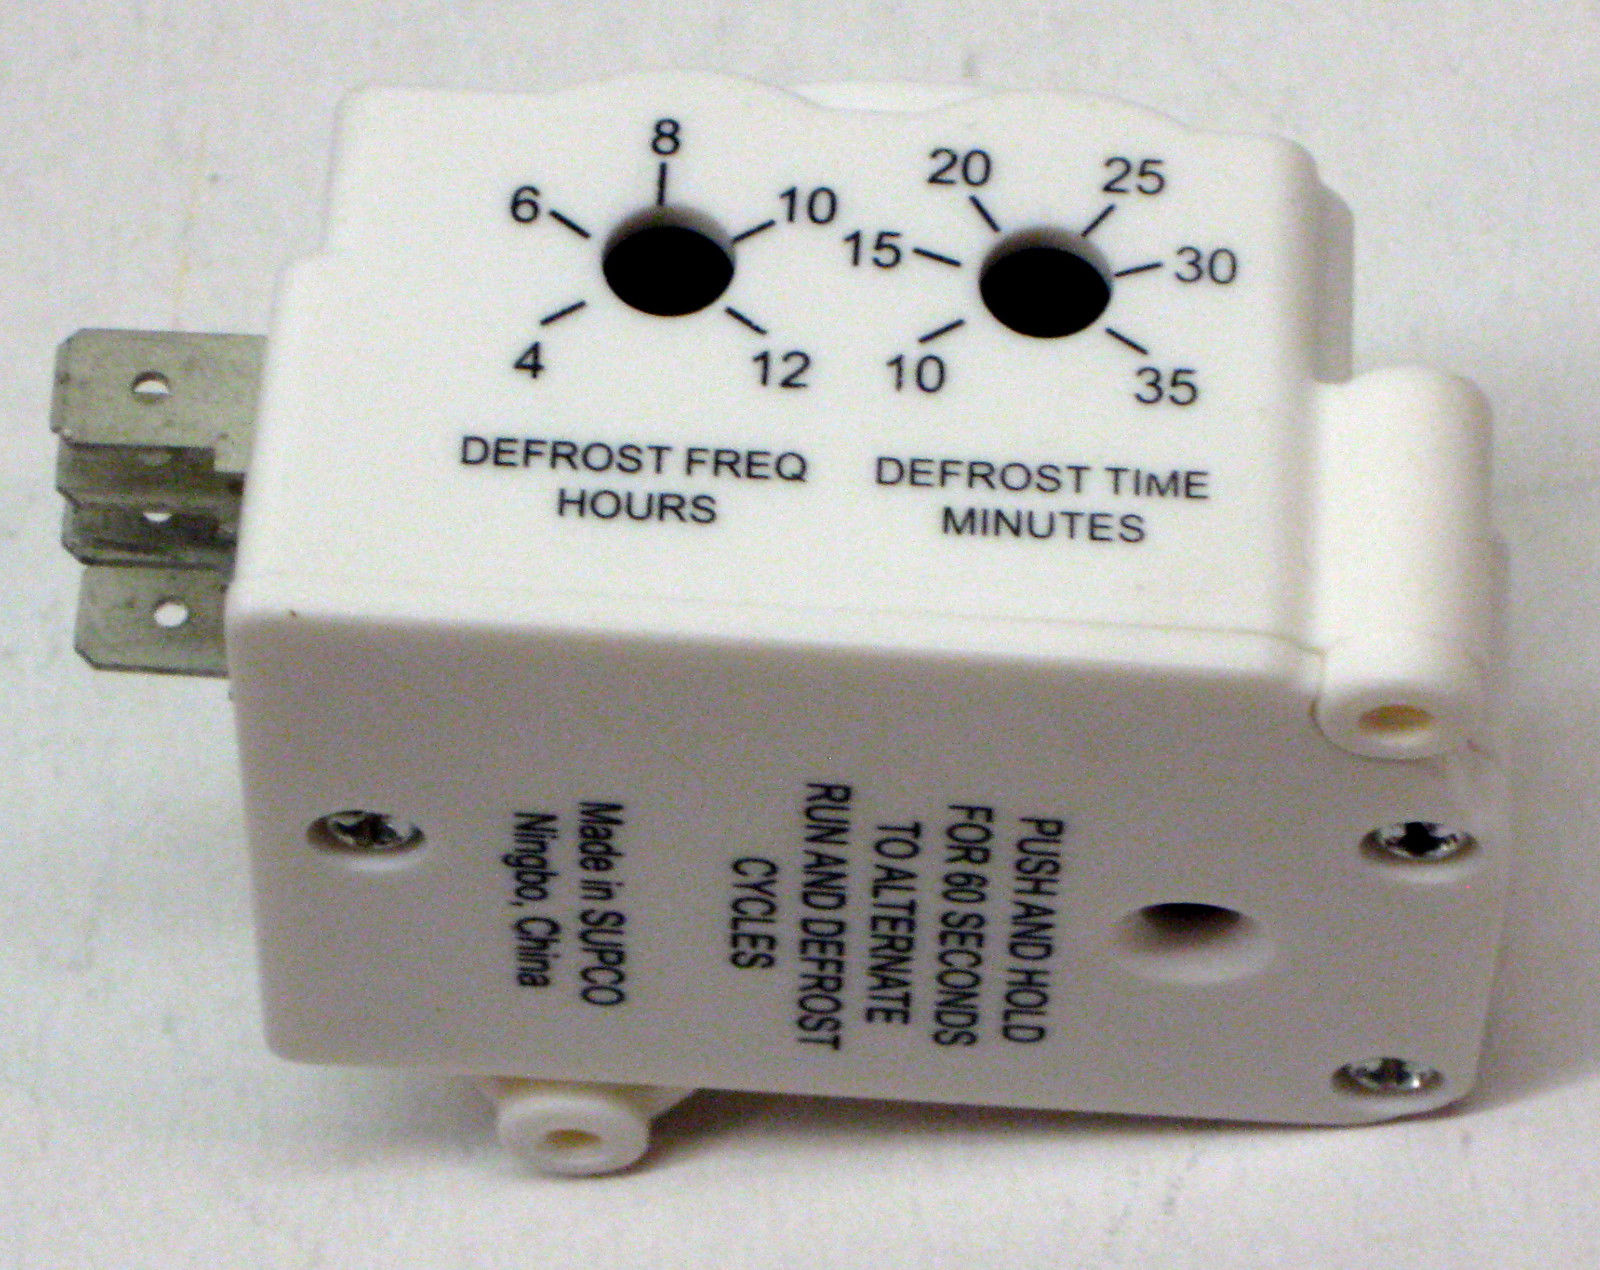 Uet120 Supco Refrigerator Defrost Timer Control Universal